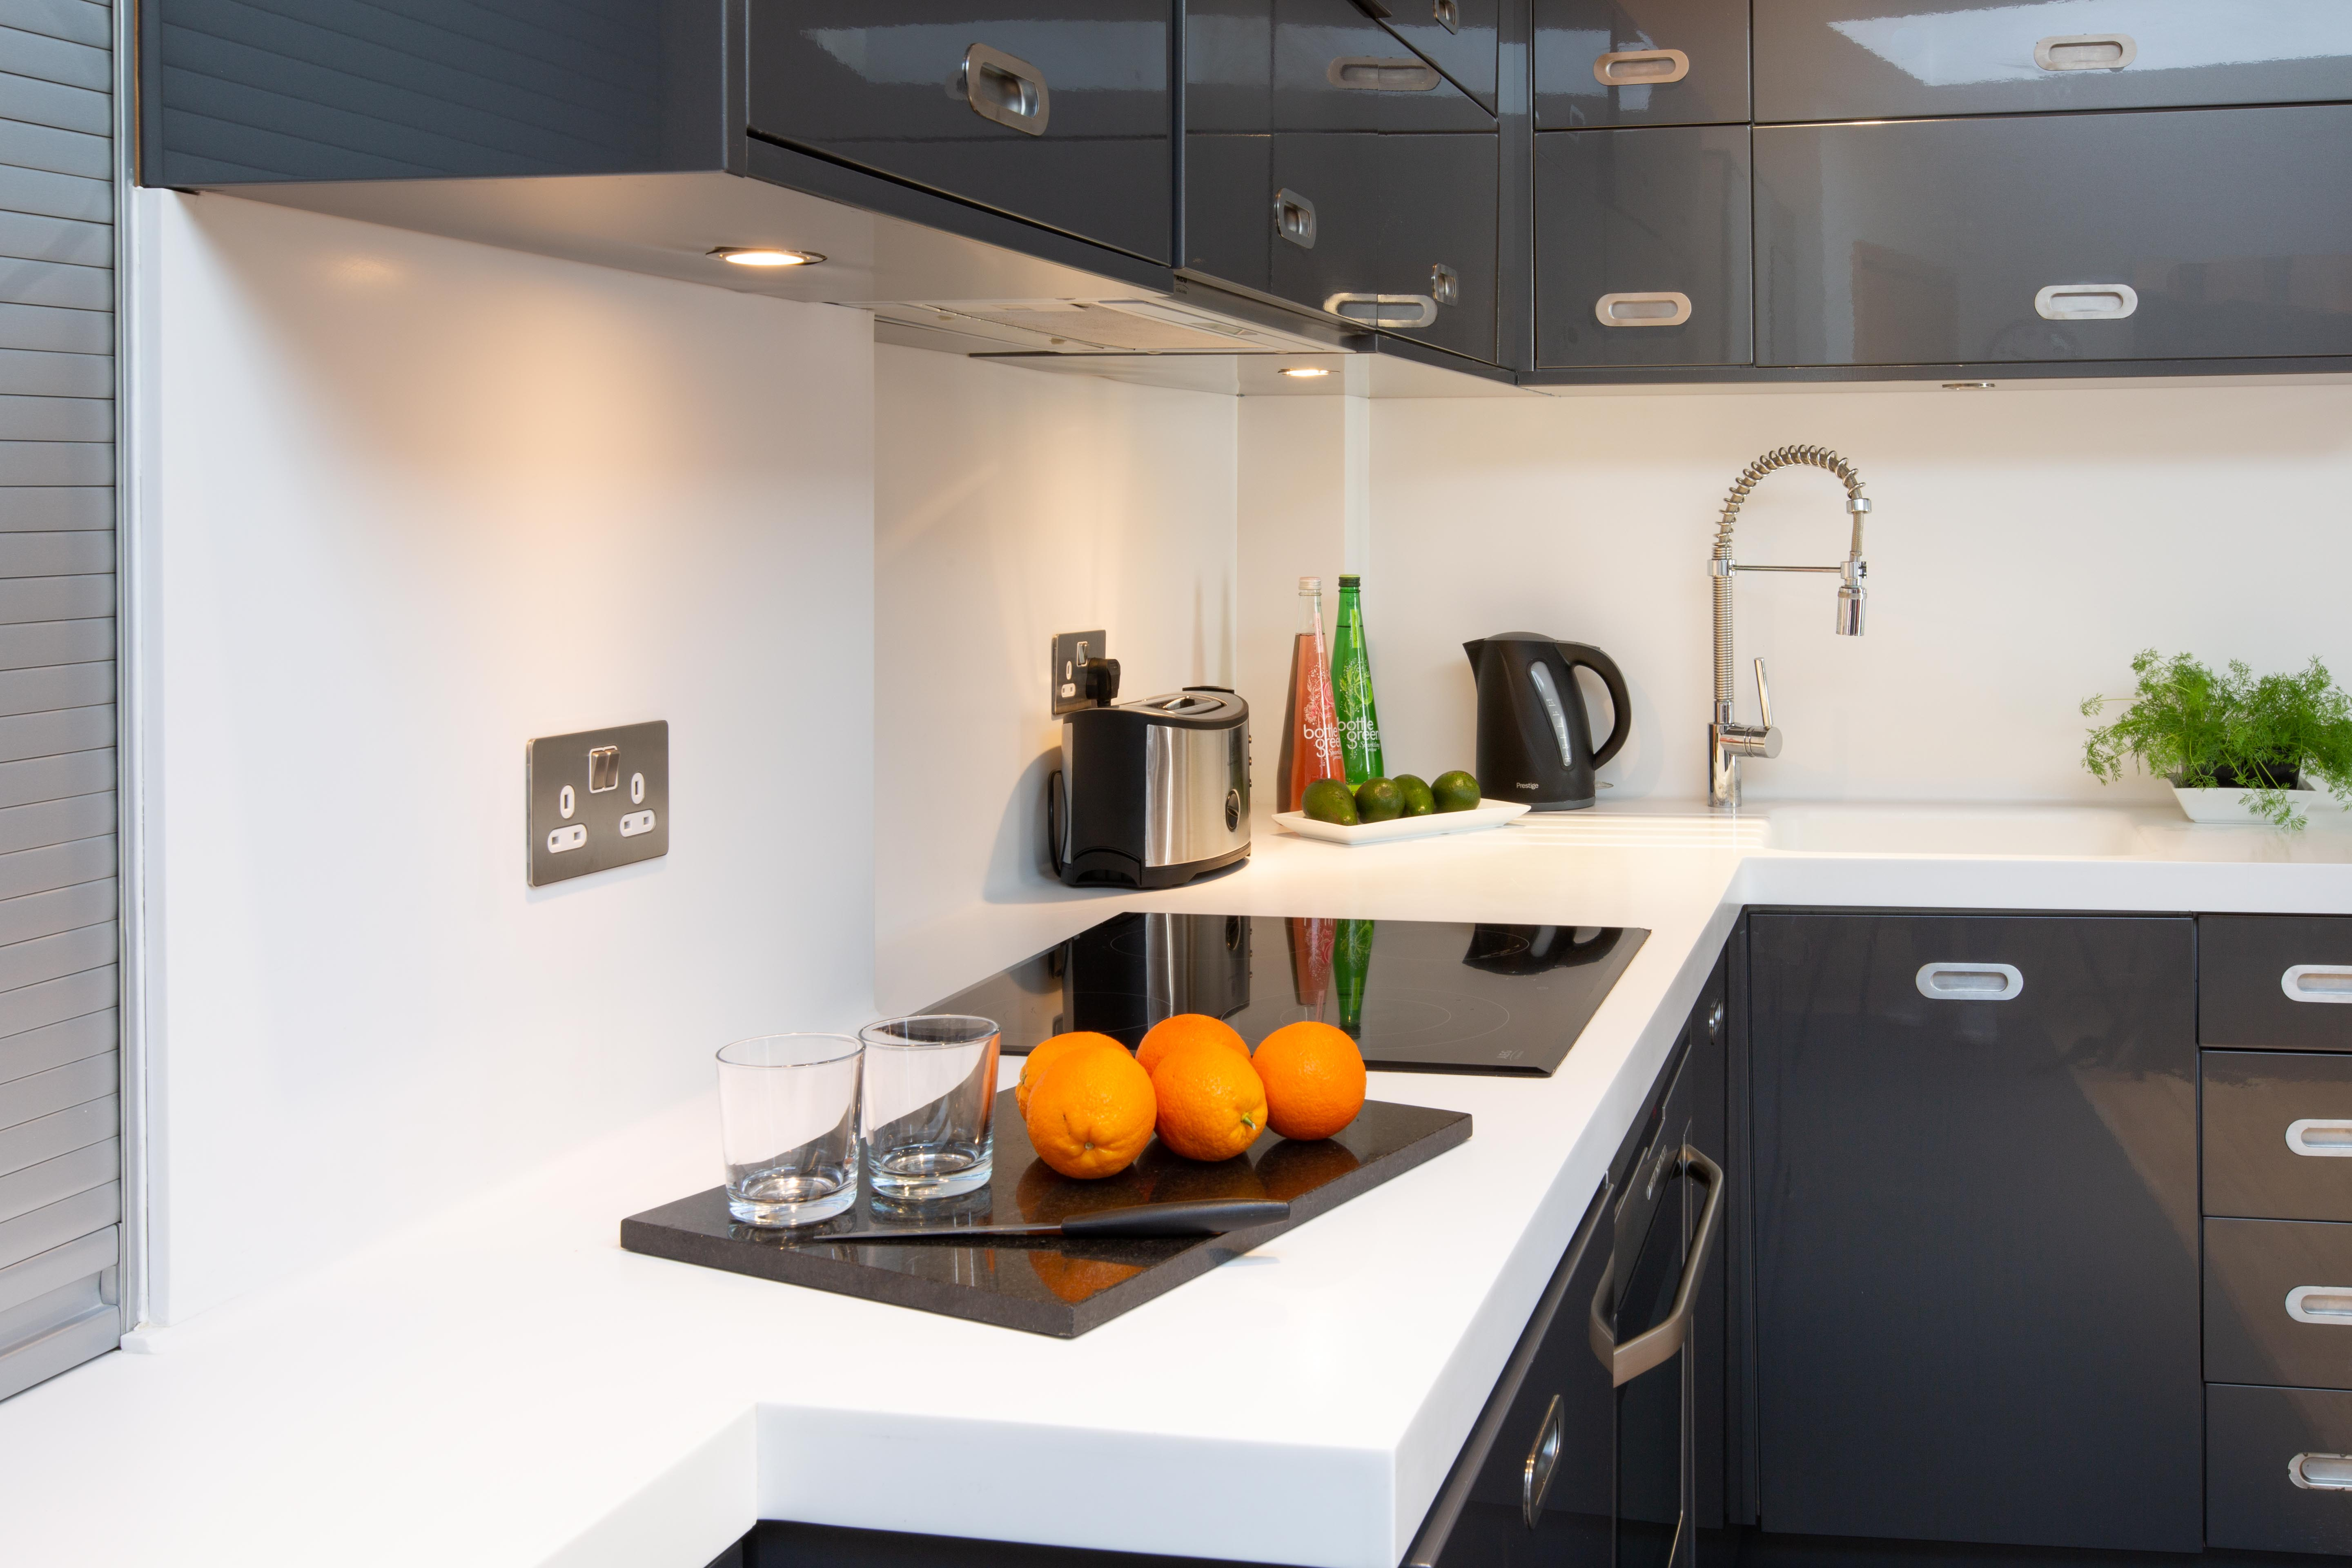 kitchen serviced apartments modern St Albans website accommodation